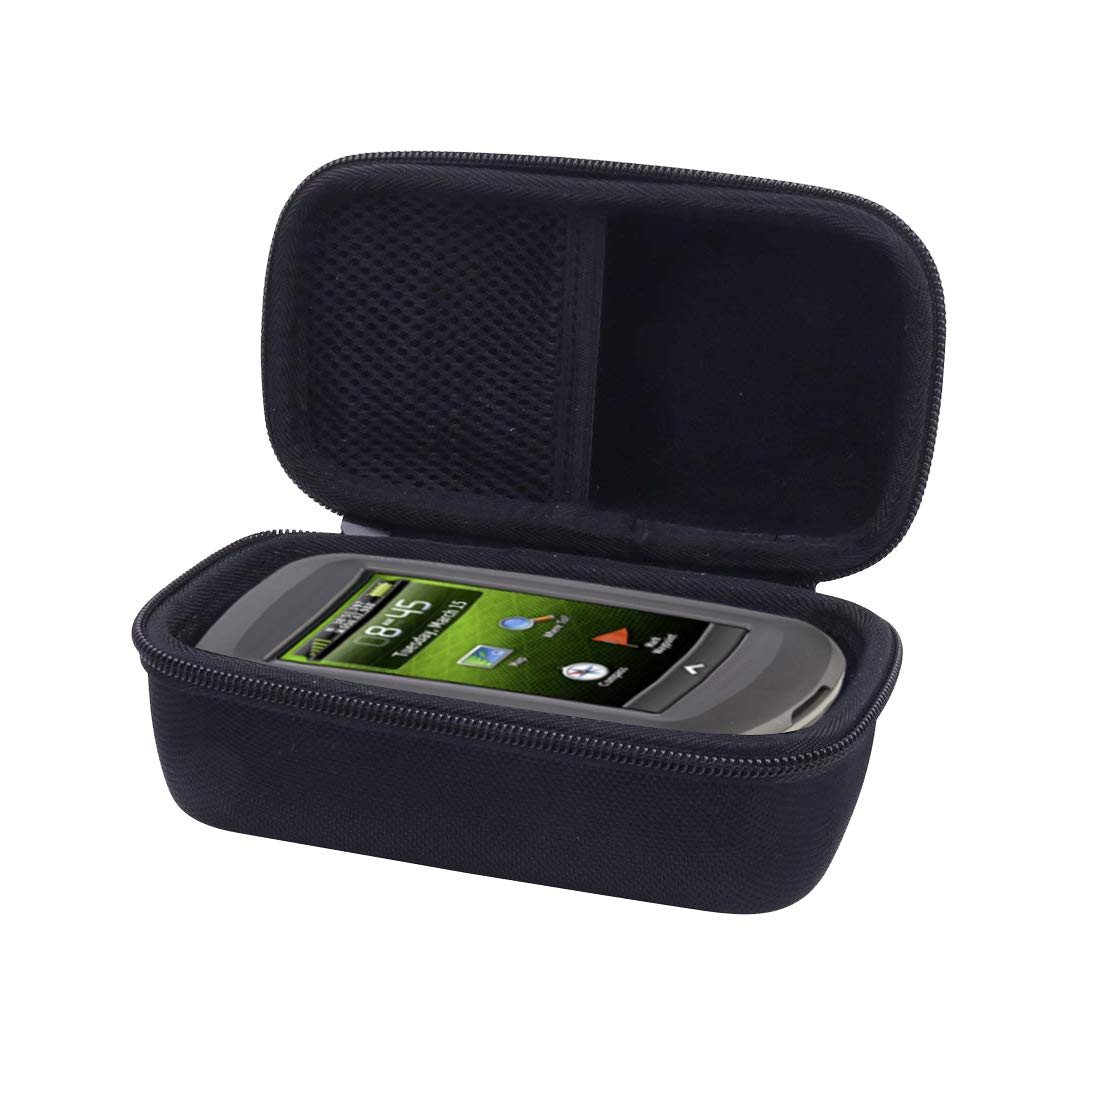 Aenllosi Hard Carrying Case for Garmin Montana Handheld GPS by Aenllosi